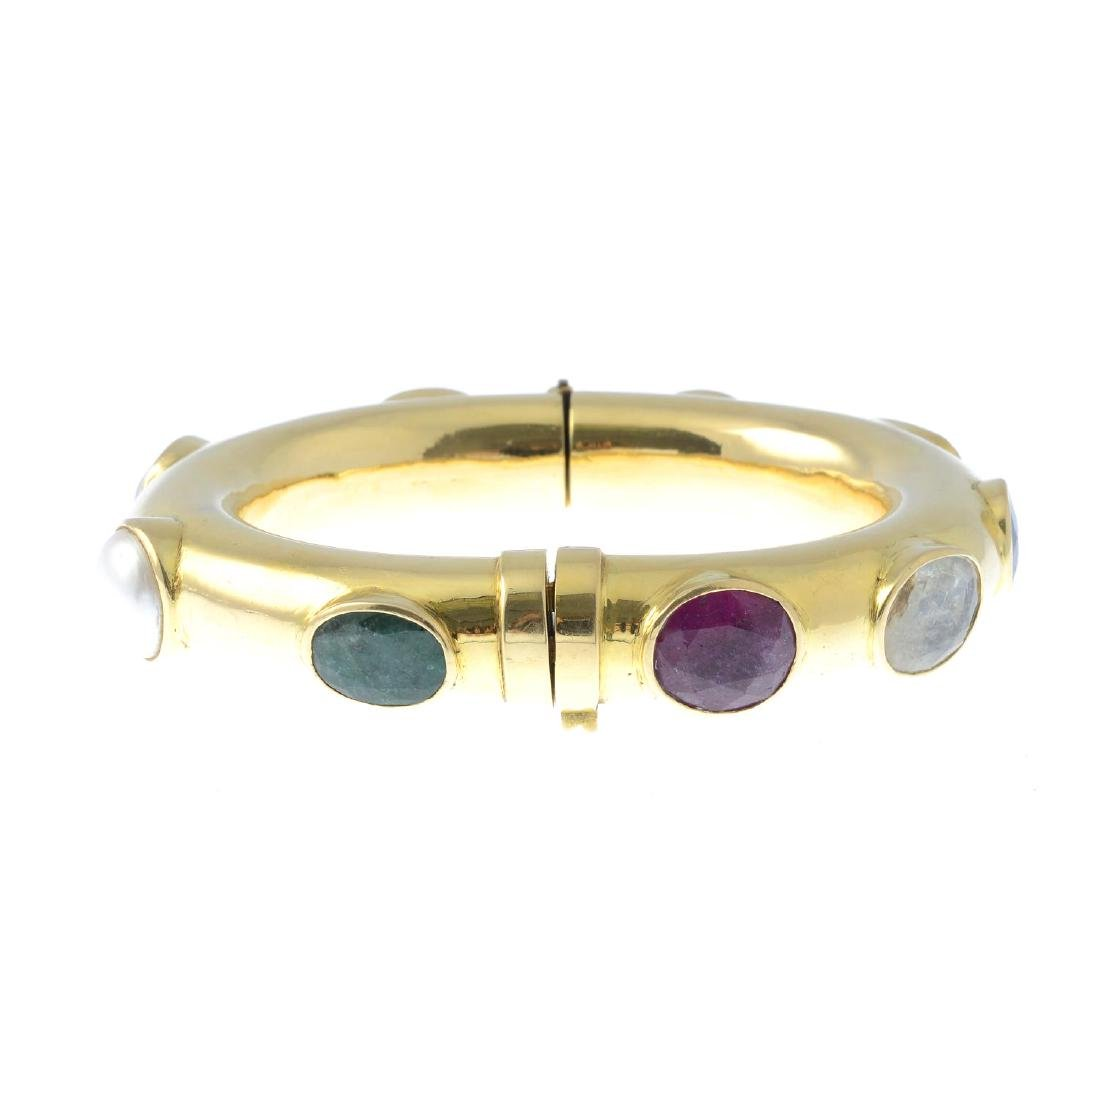 (206711) A gem-set hinged bangle. Inset with vari-gem